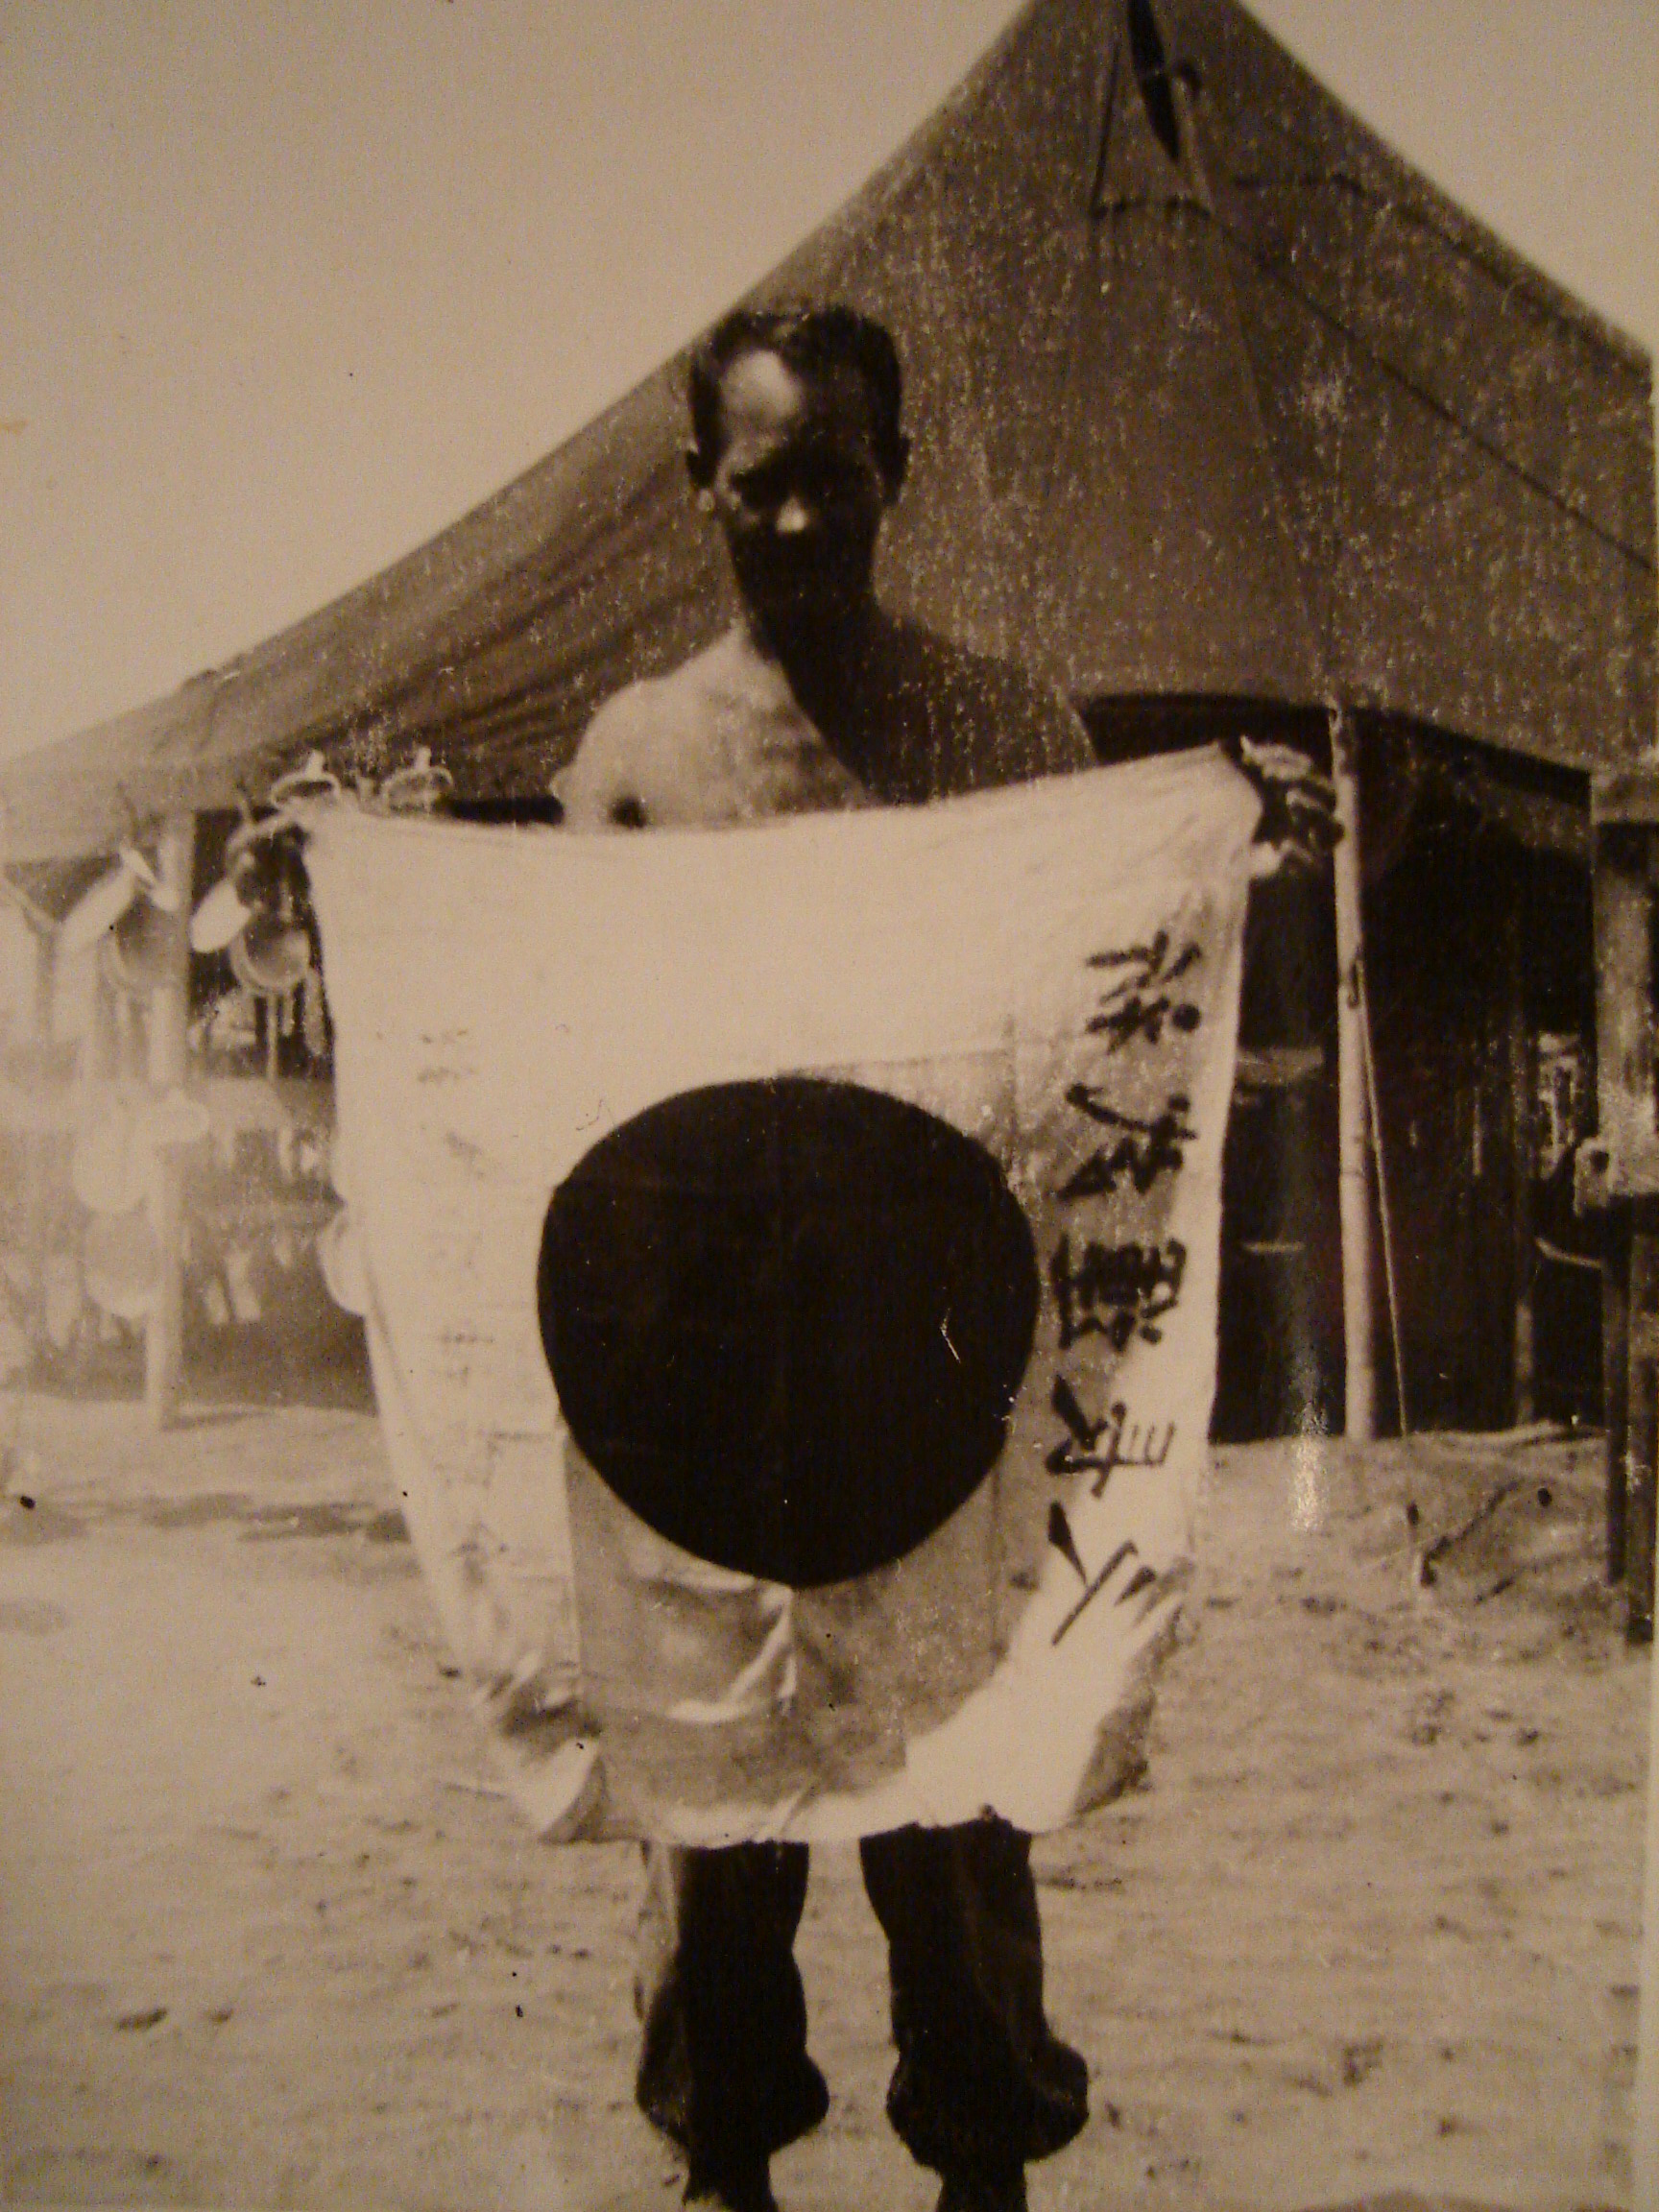 Charles_A_Coffman_Co_G_with_Captured_Japanese_Flag_Courtesy_of_Grandson_Matt_Oravik